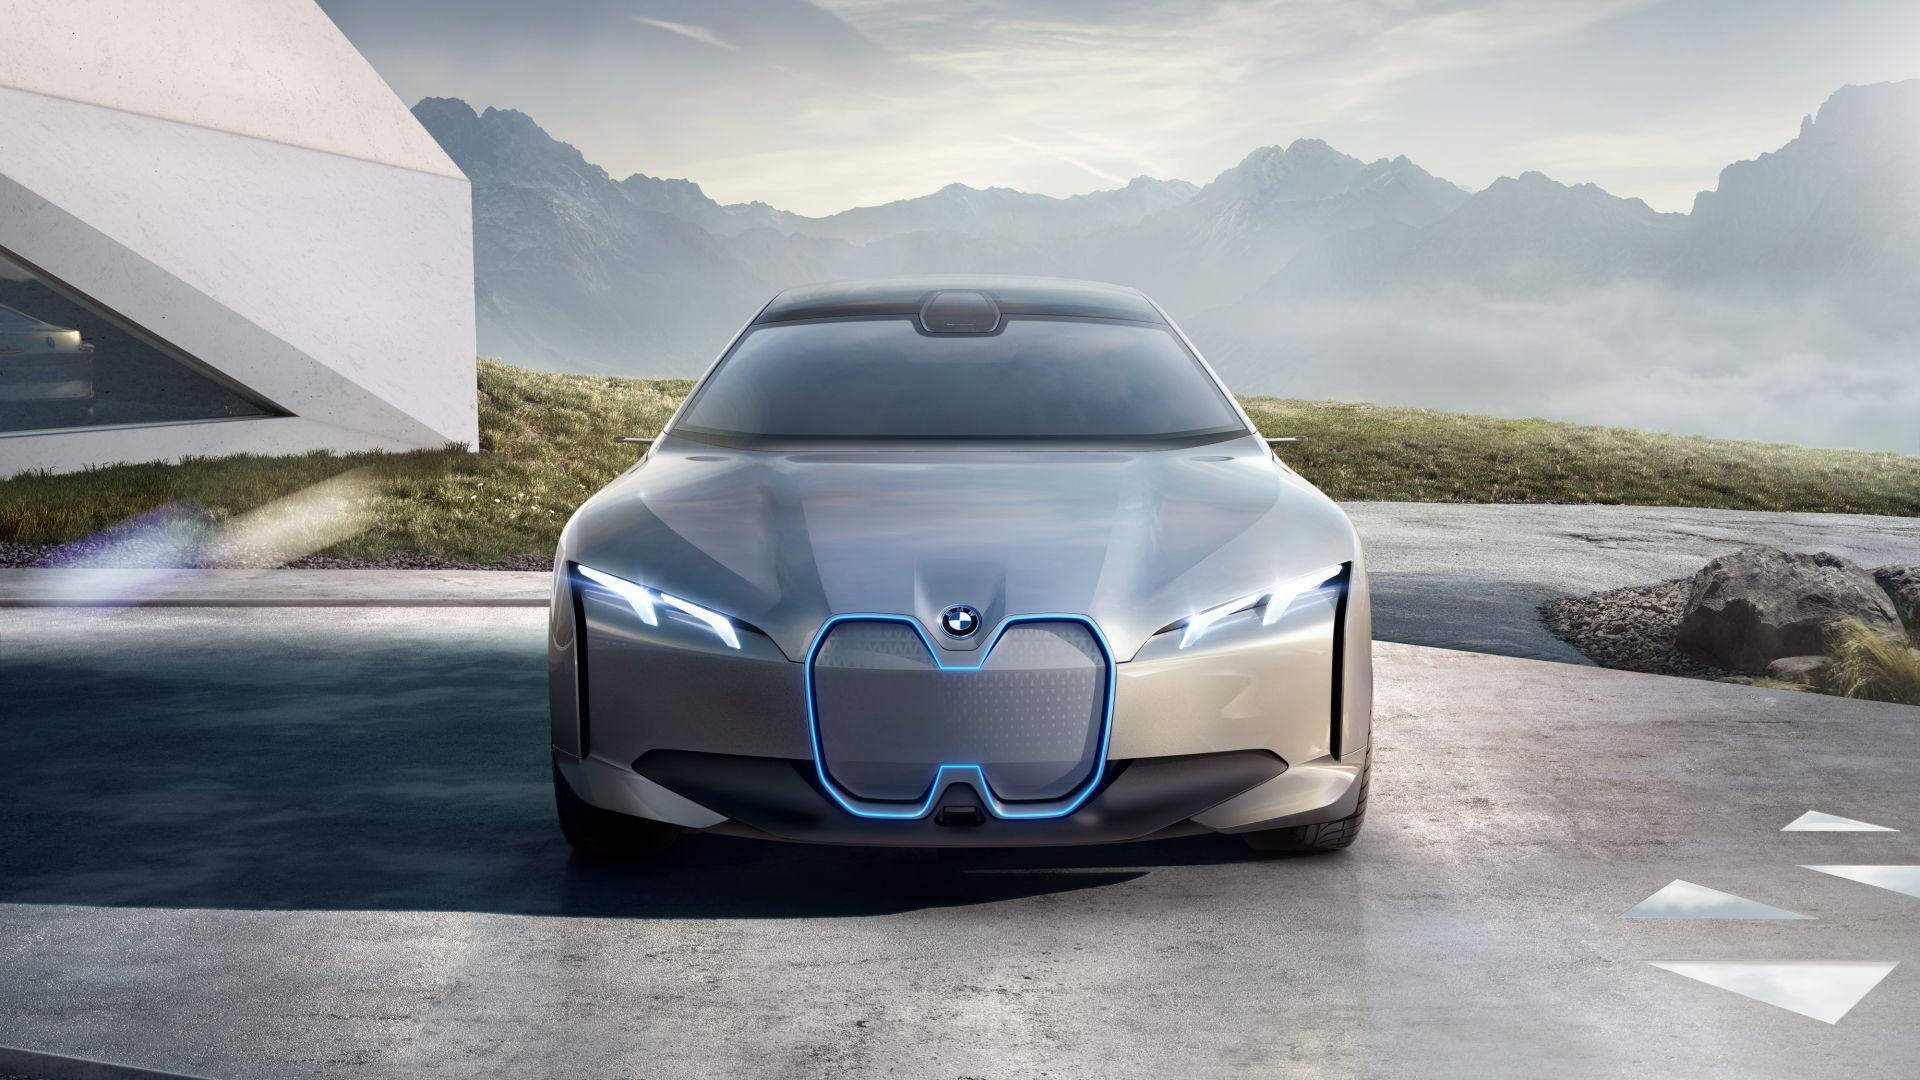 Bmw I4 Electric Cars 4k Horizontal With Images Concept